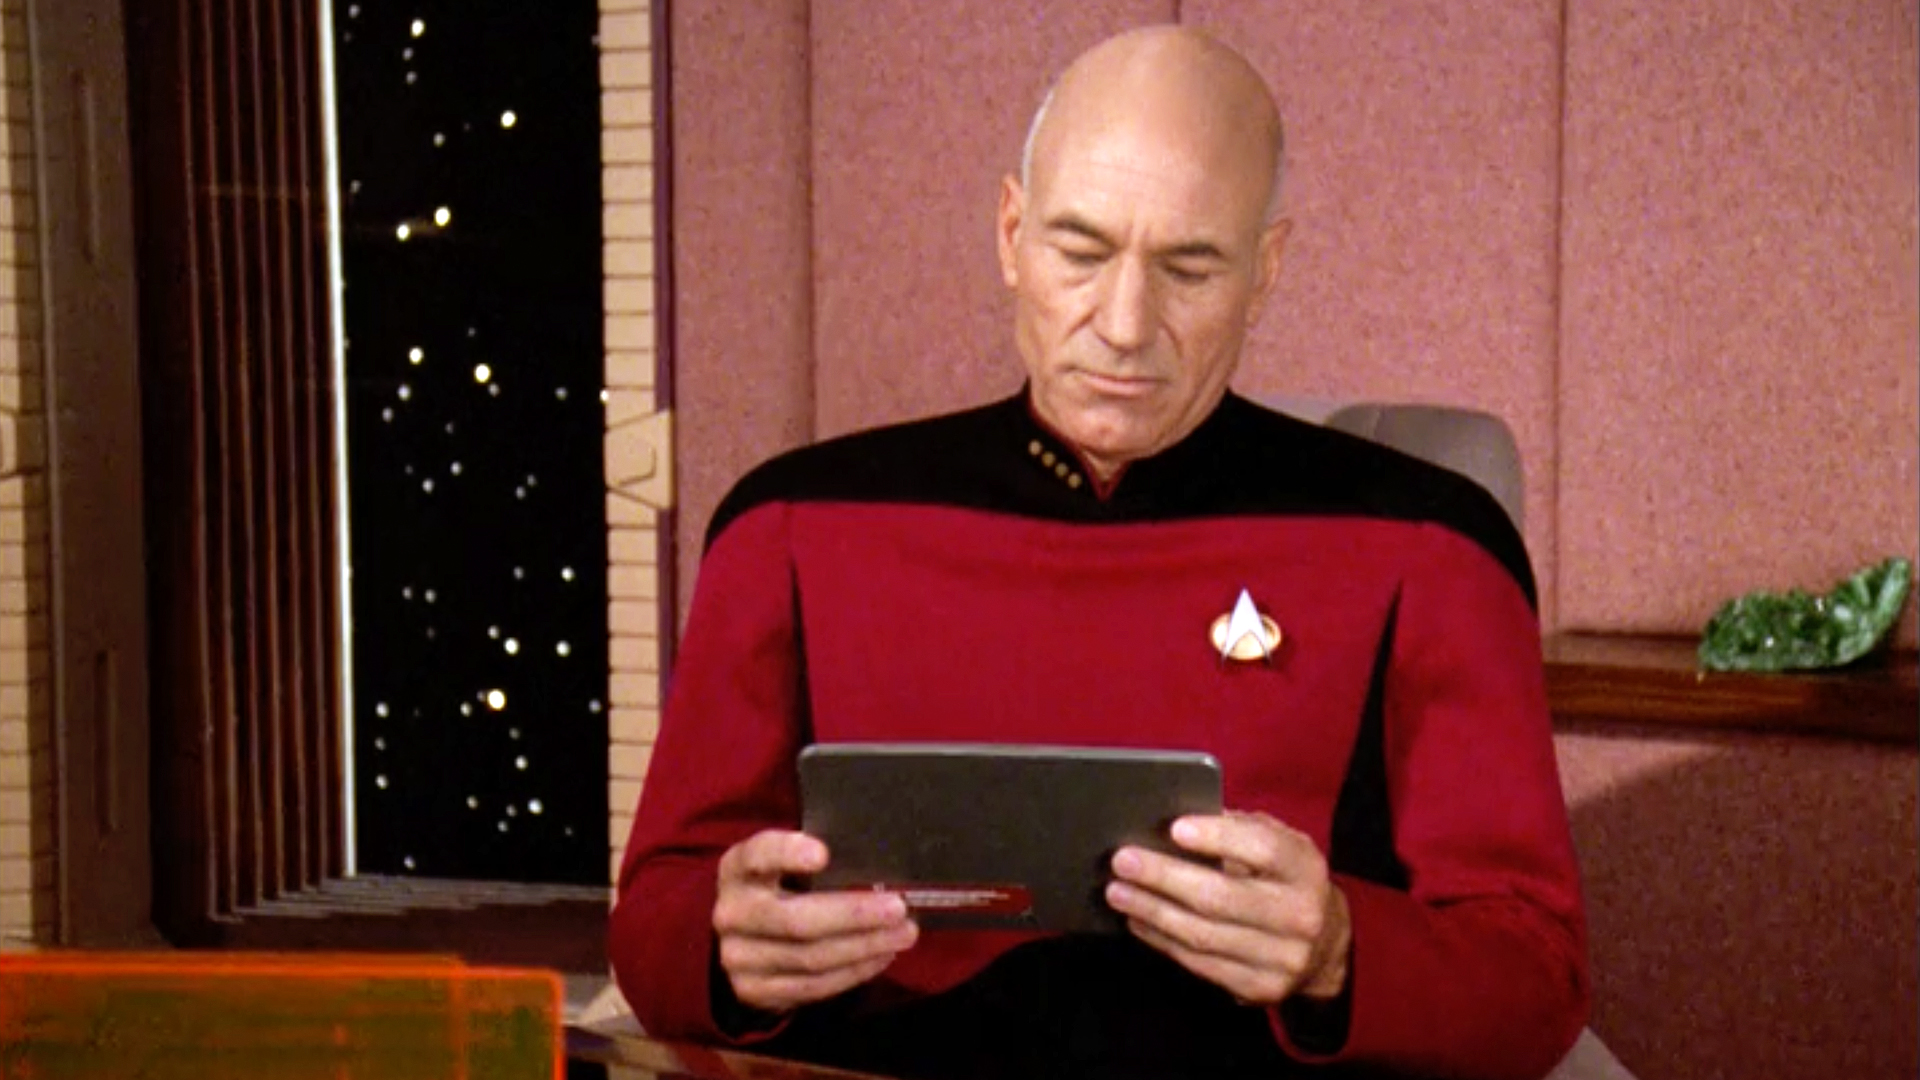 Captain Picard holding a PADD